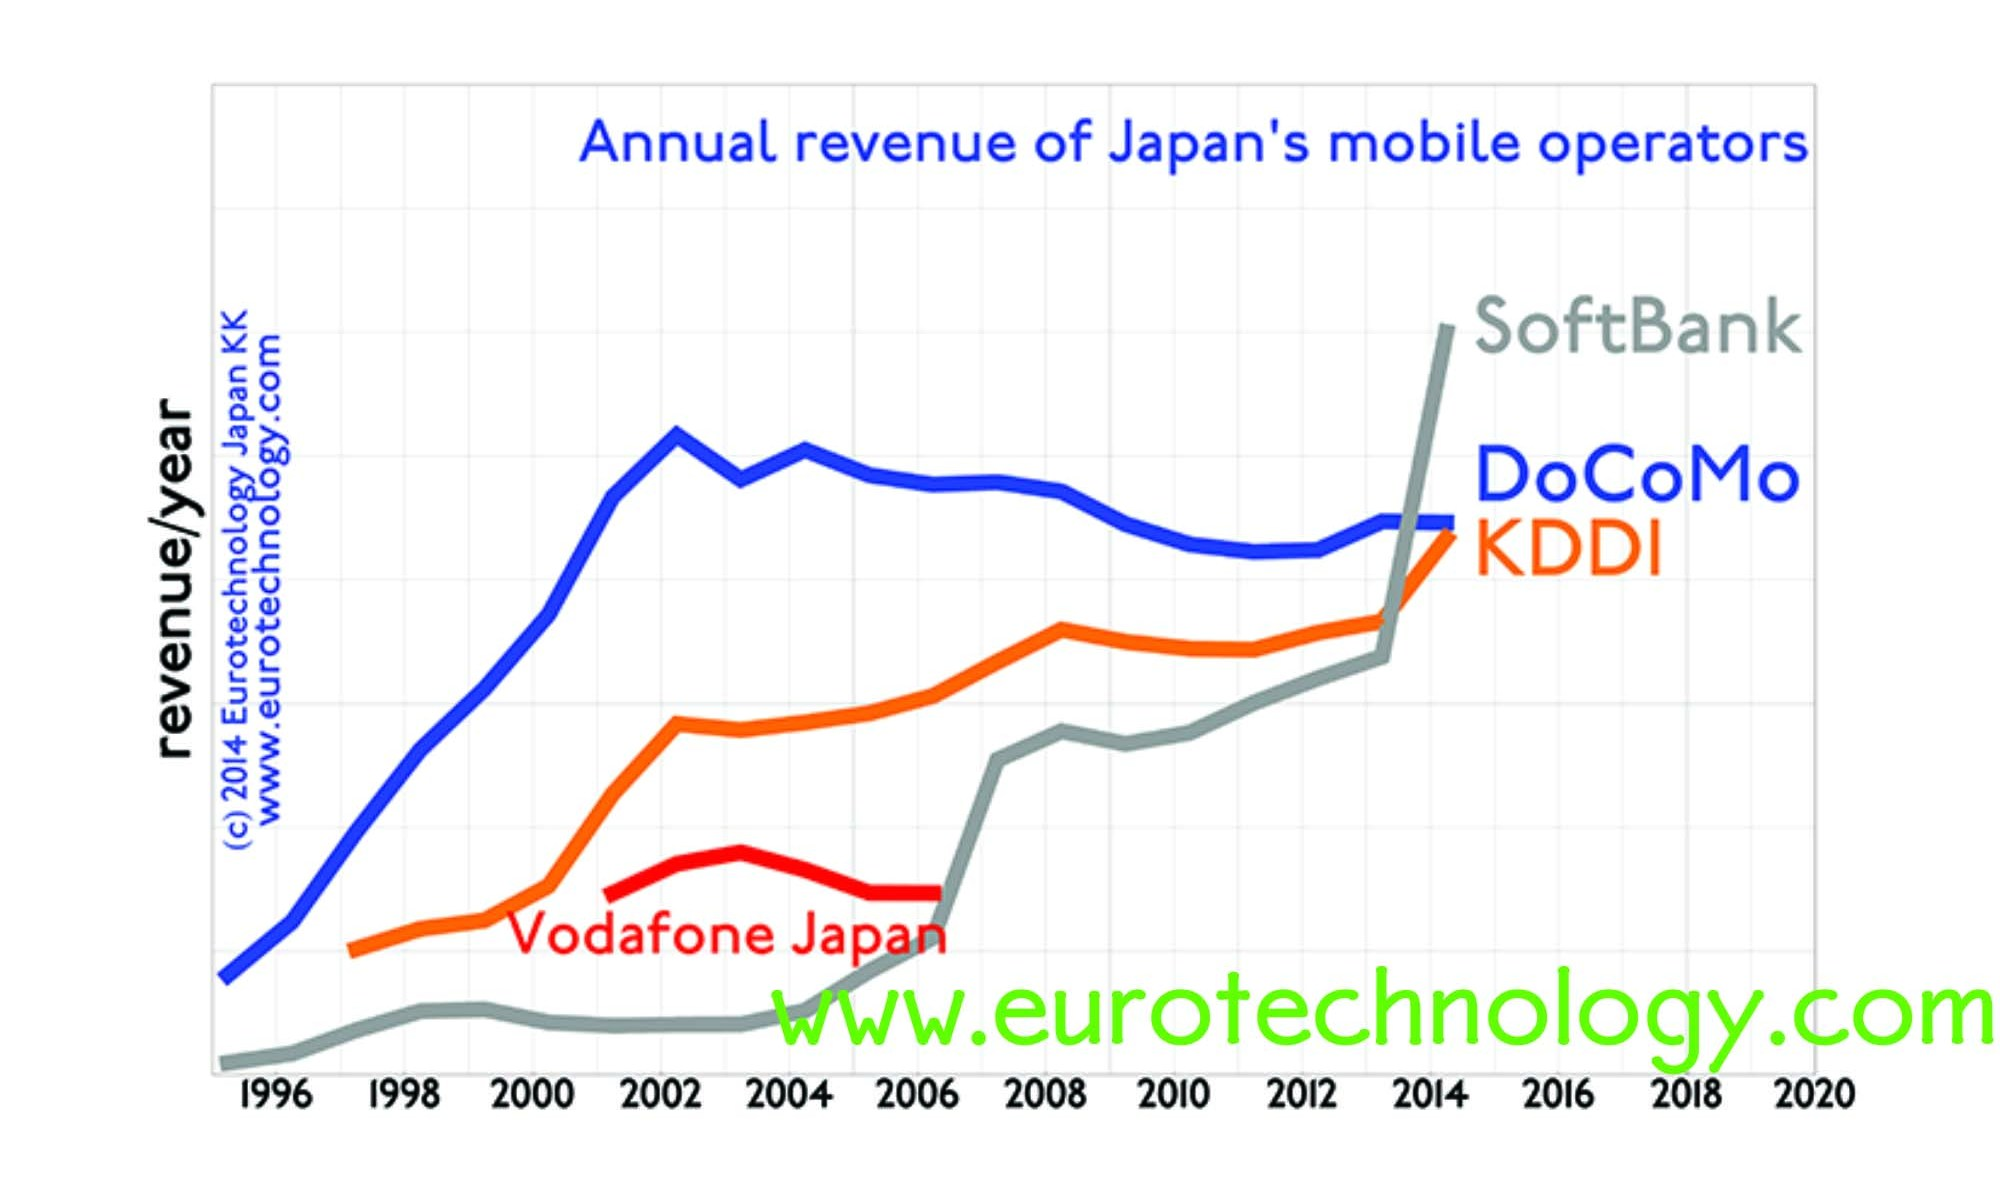 SoftBank overtakes Docomo and KDDI in revenues and income and market cap SoftBank overtakes Docomo and KDDI in all major KPIs